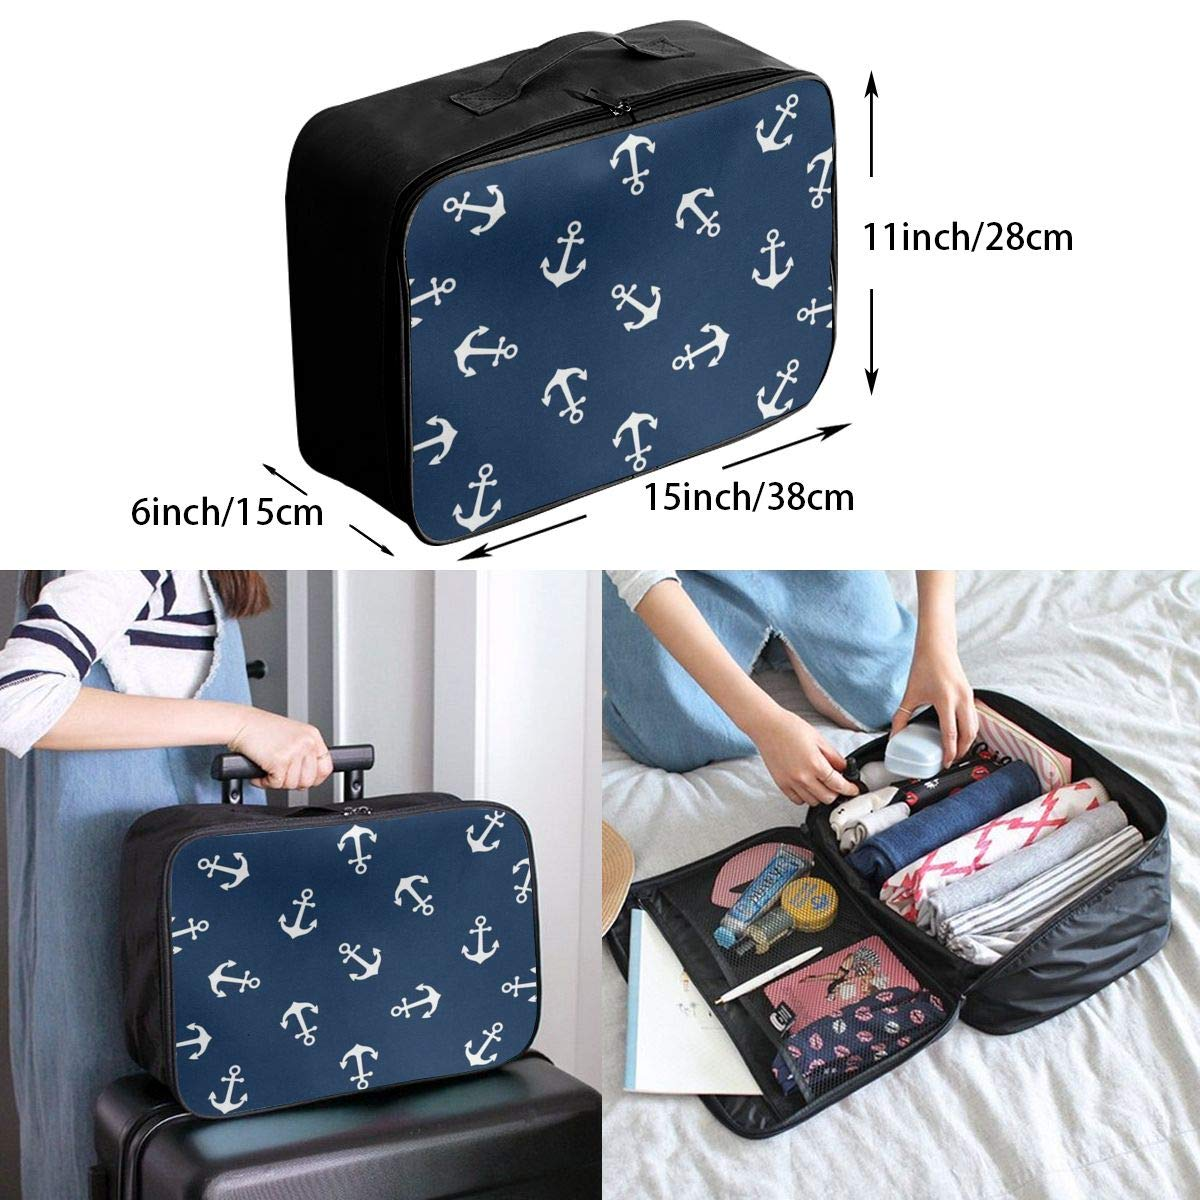 3 Portable Duffel Inspiring Trolley Handle Luggage Bag Travel Bags Cat